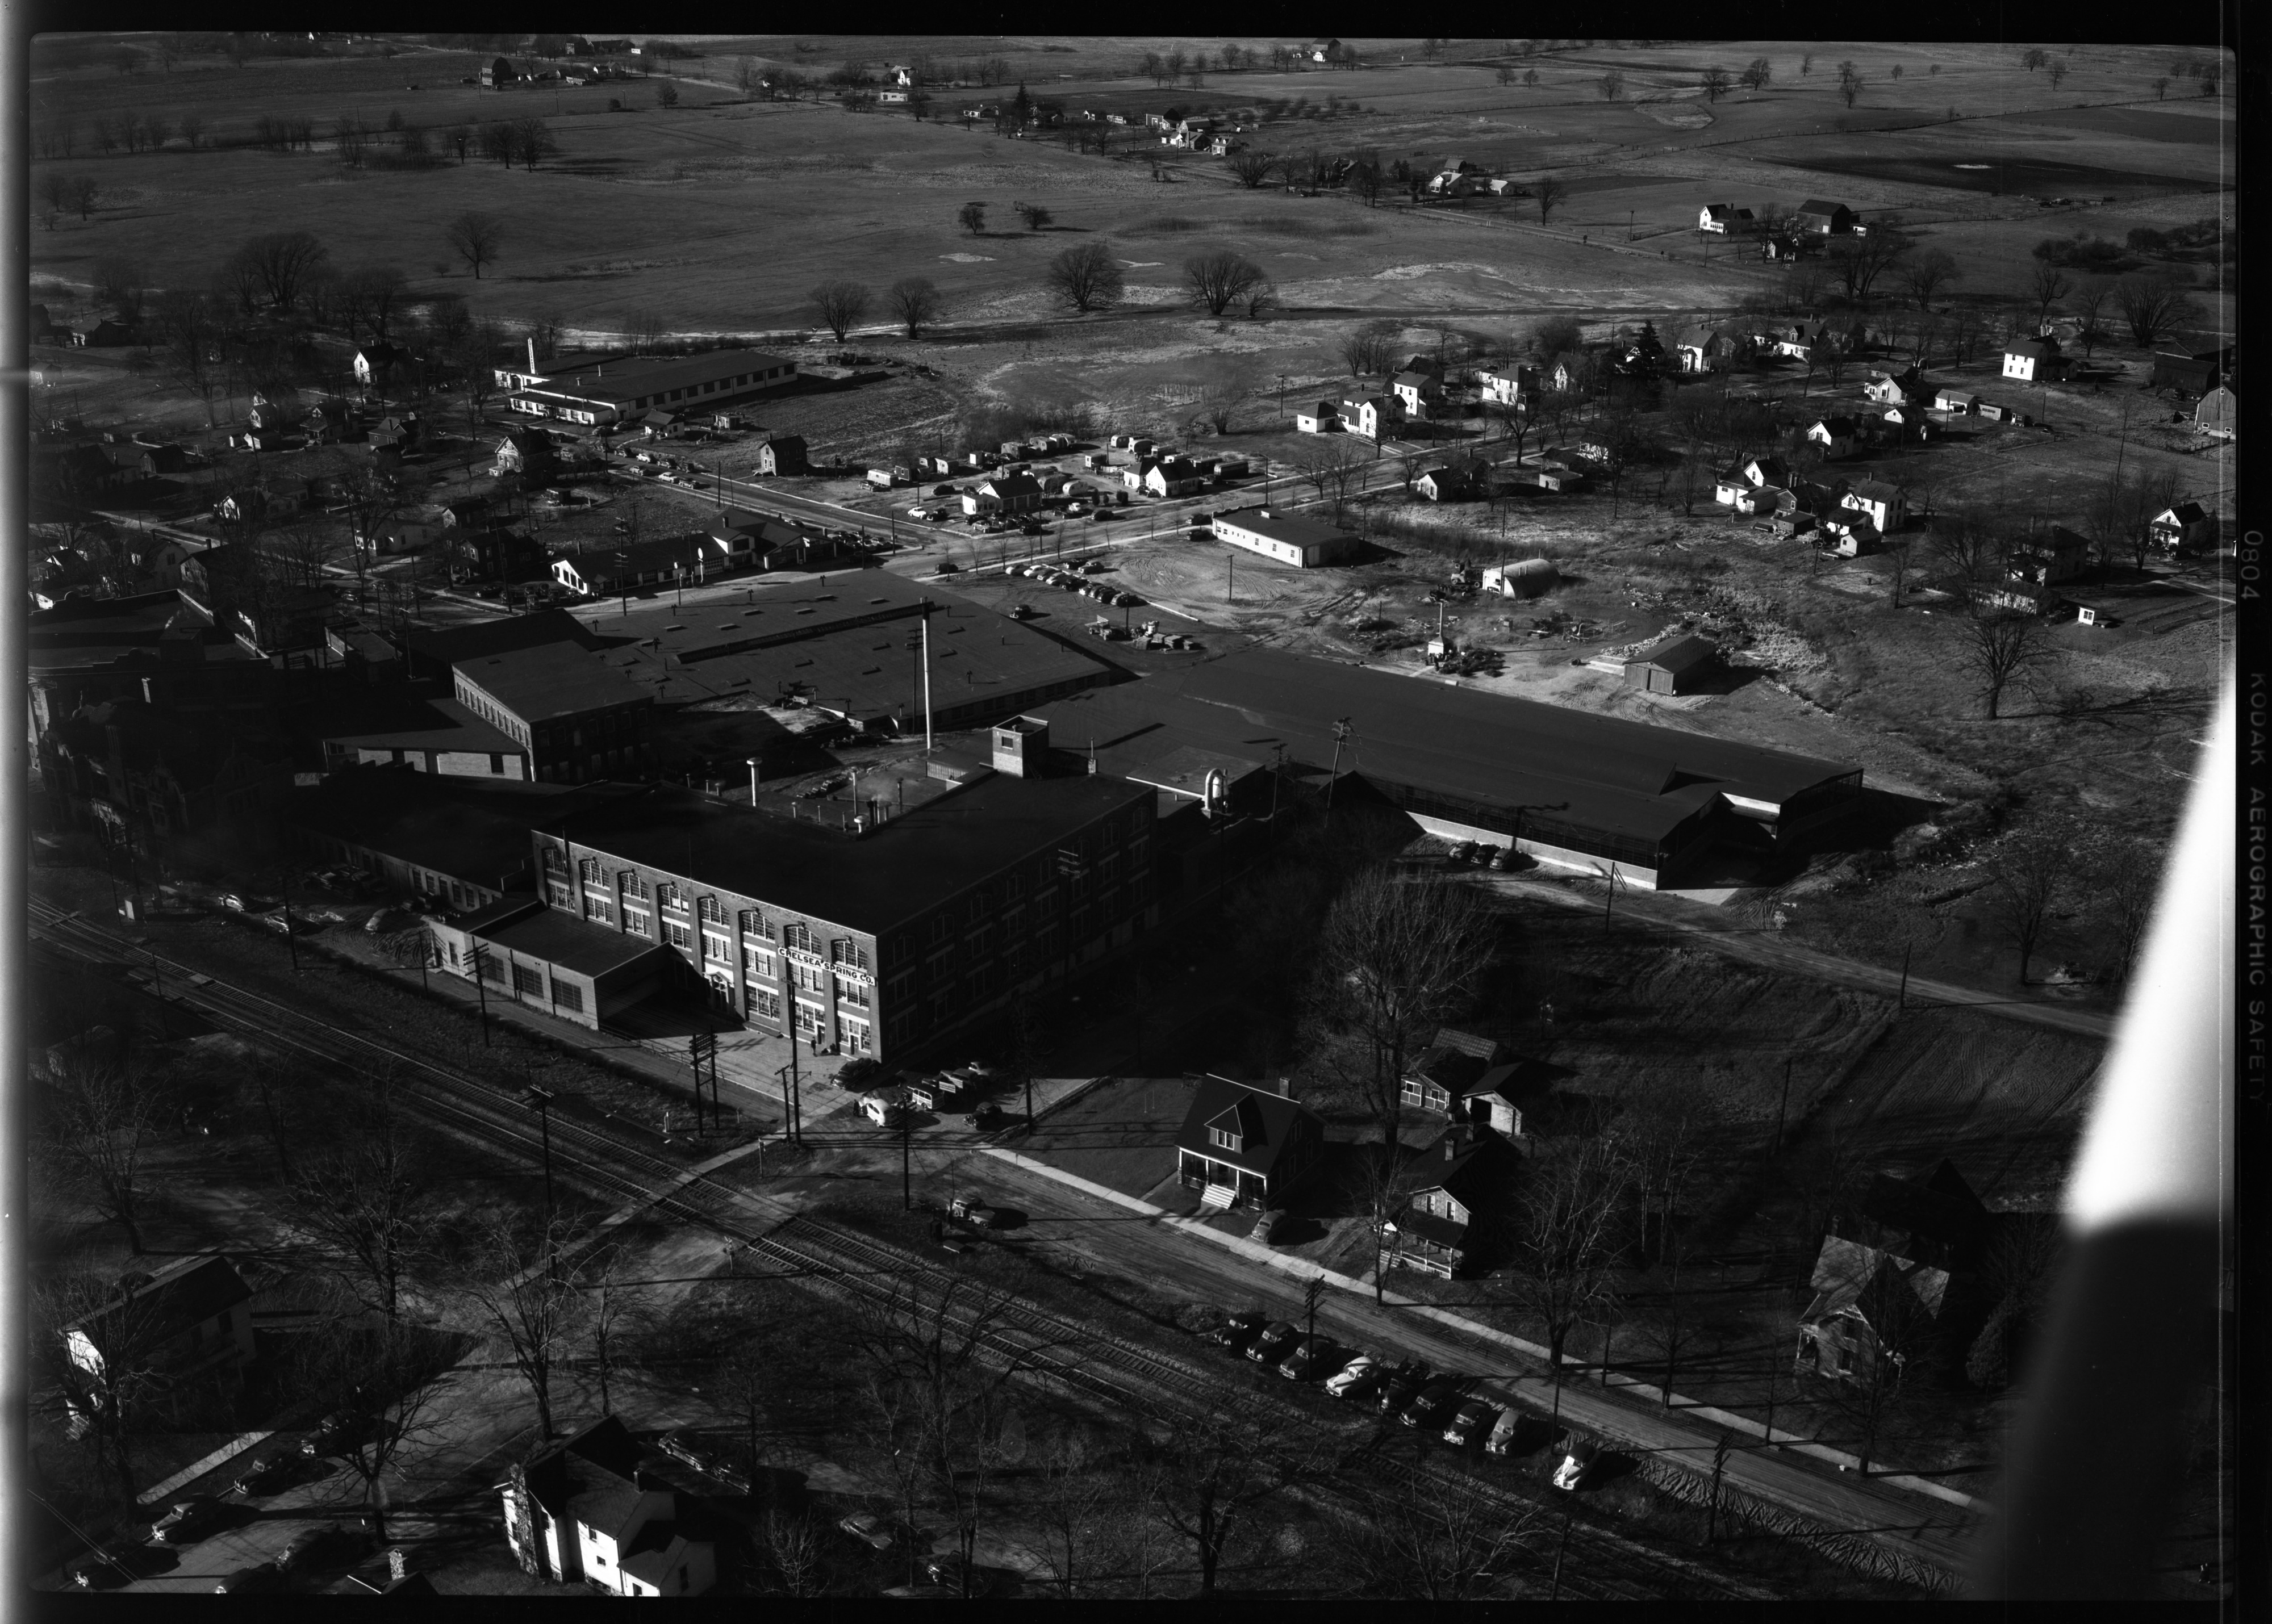 Aerial Photograph the Chelsea Spring Factory, January 1950 image